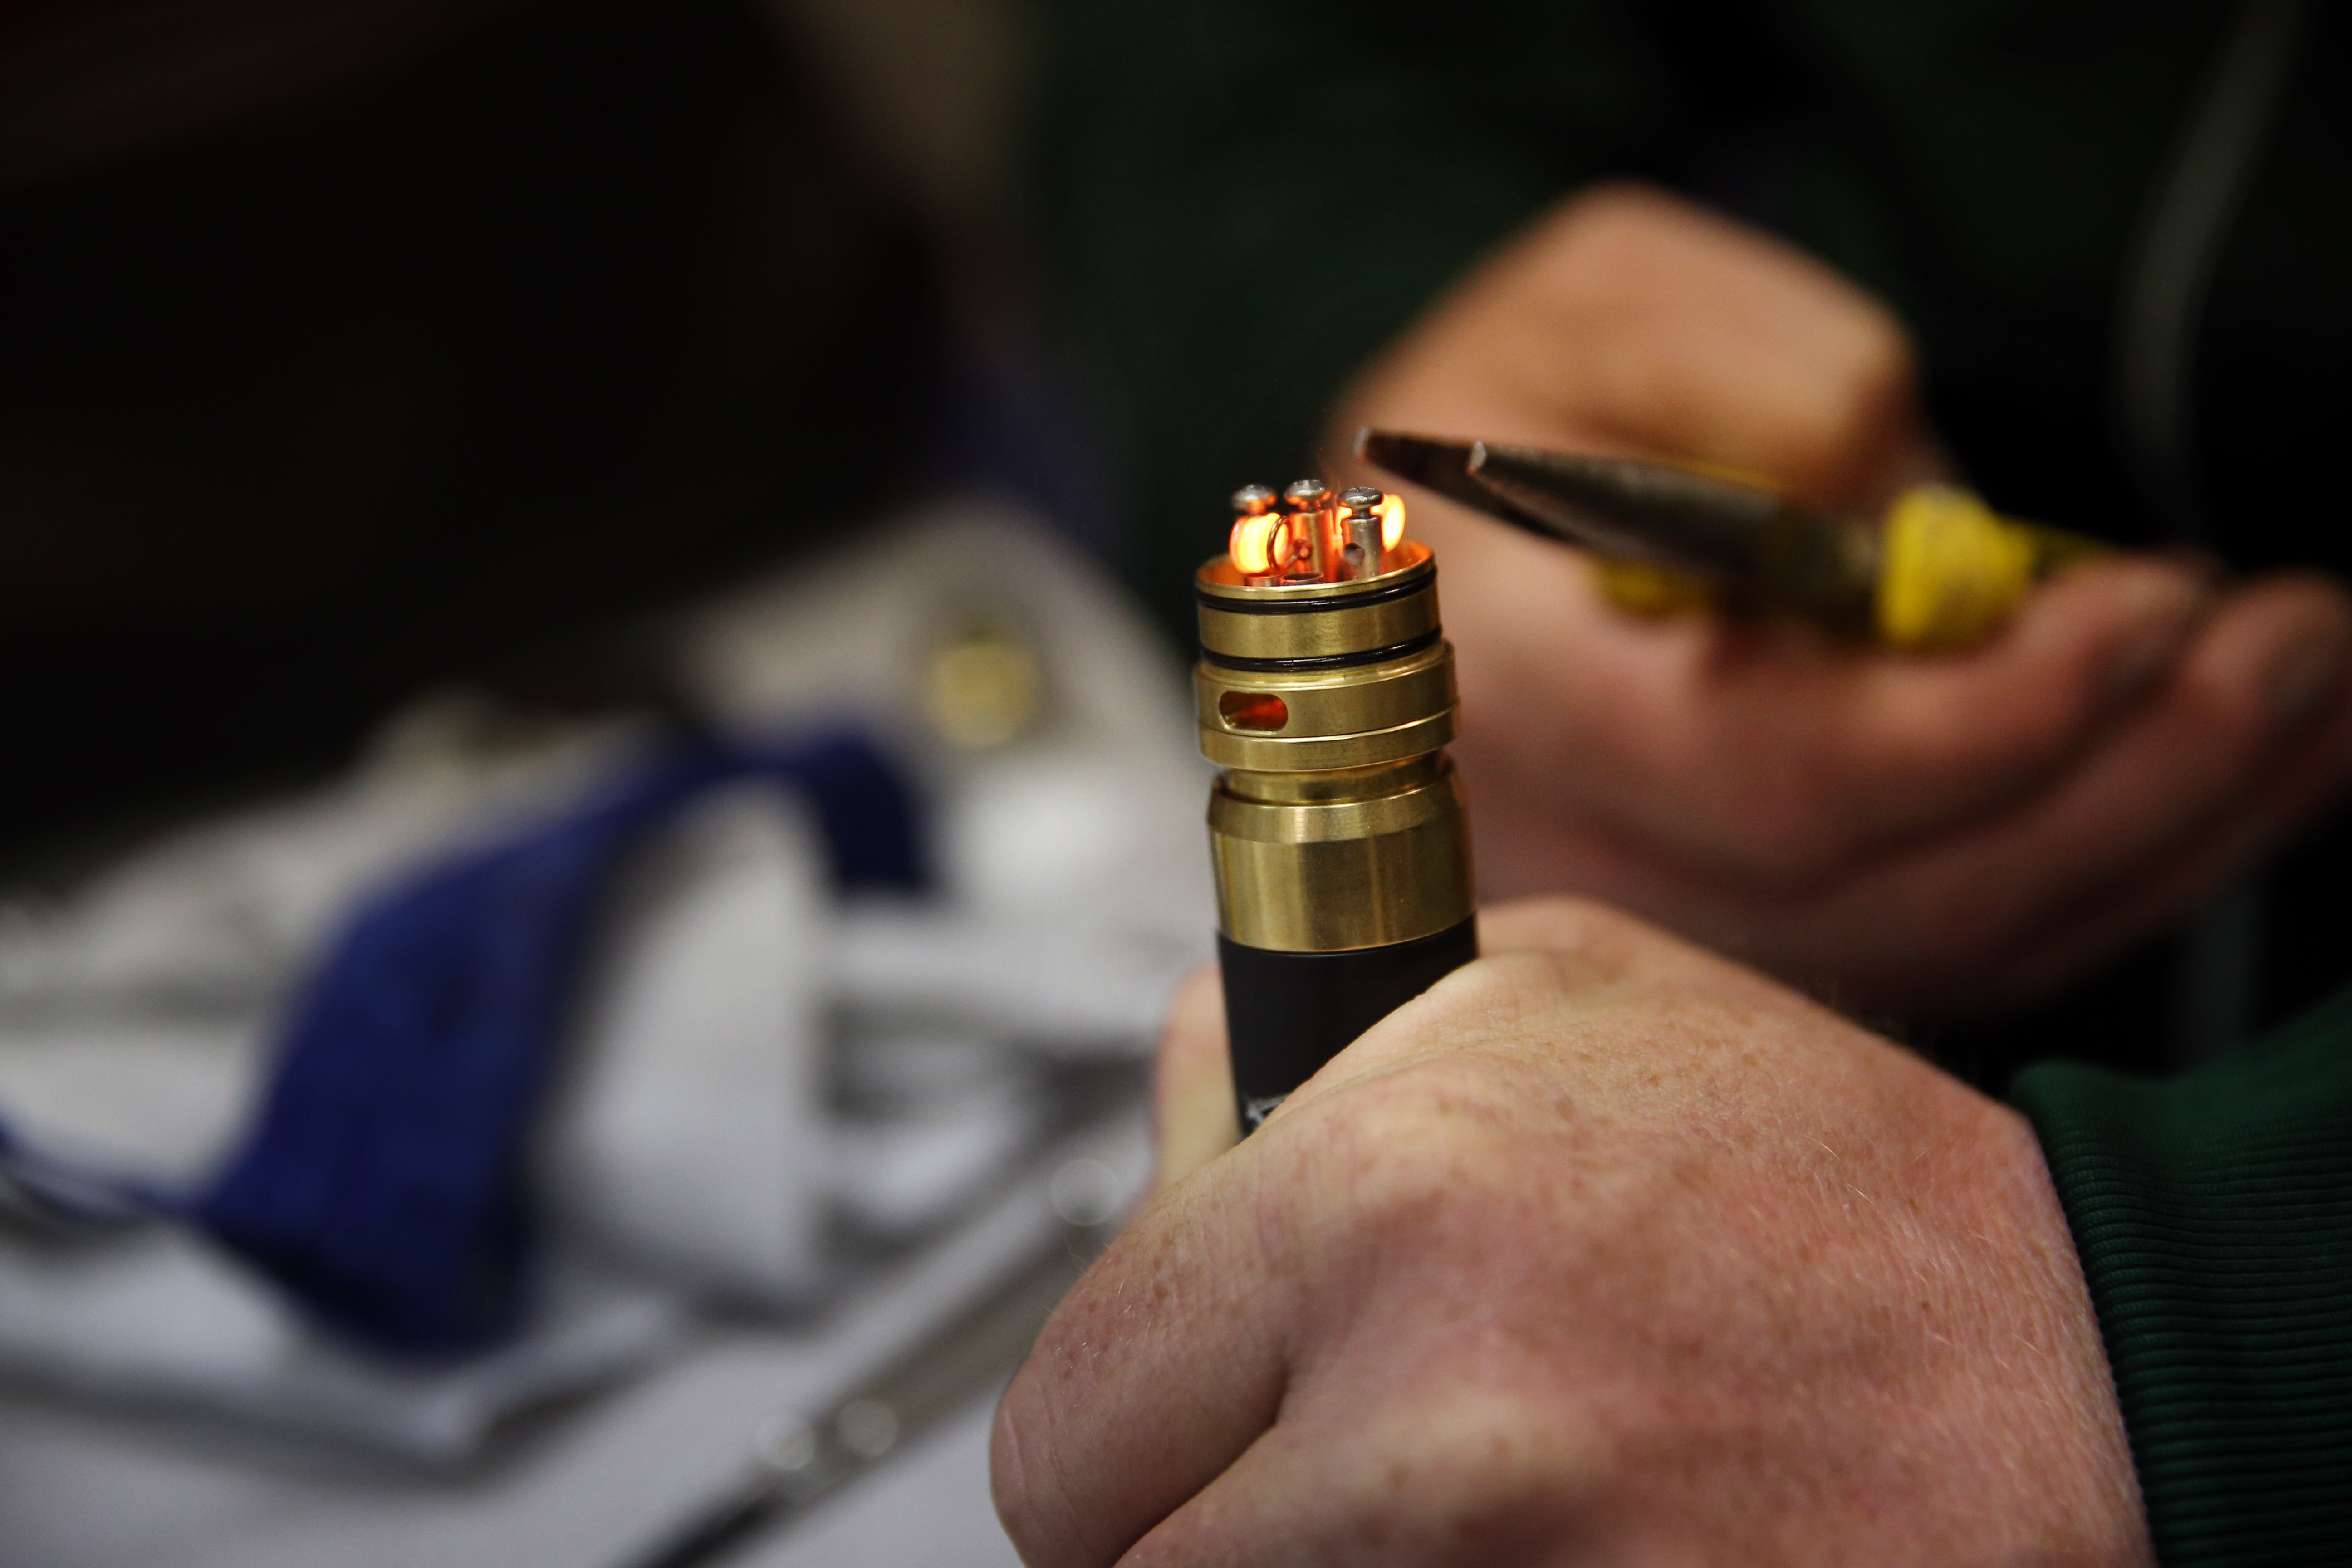 At 'vape' competitions, it's all about community - The Boston Globe